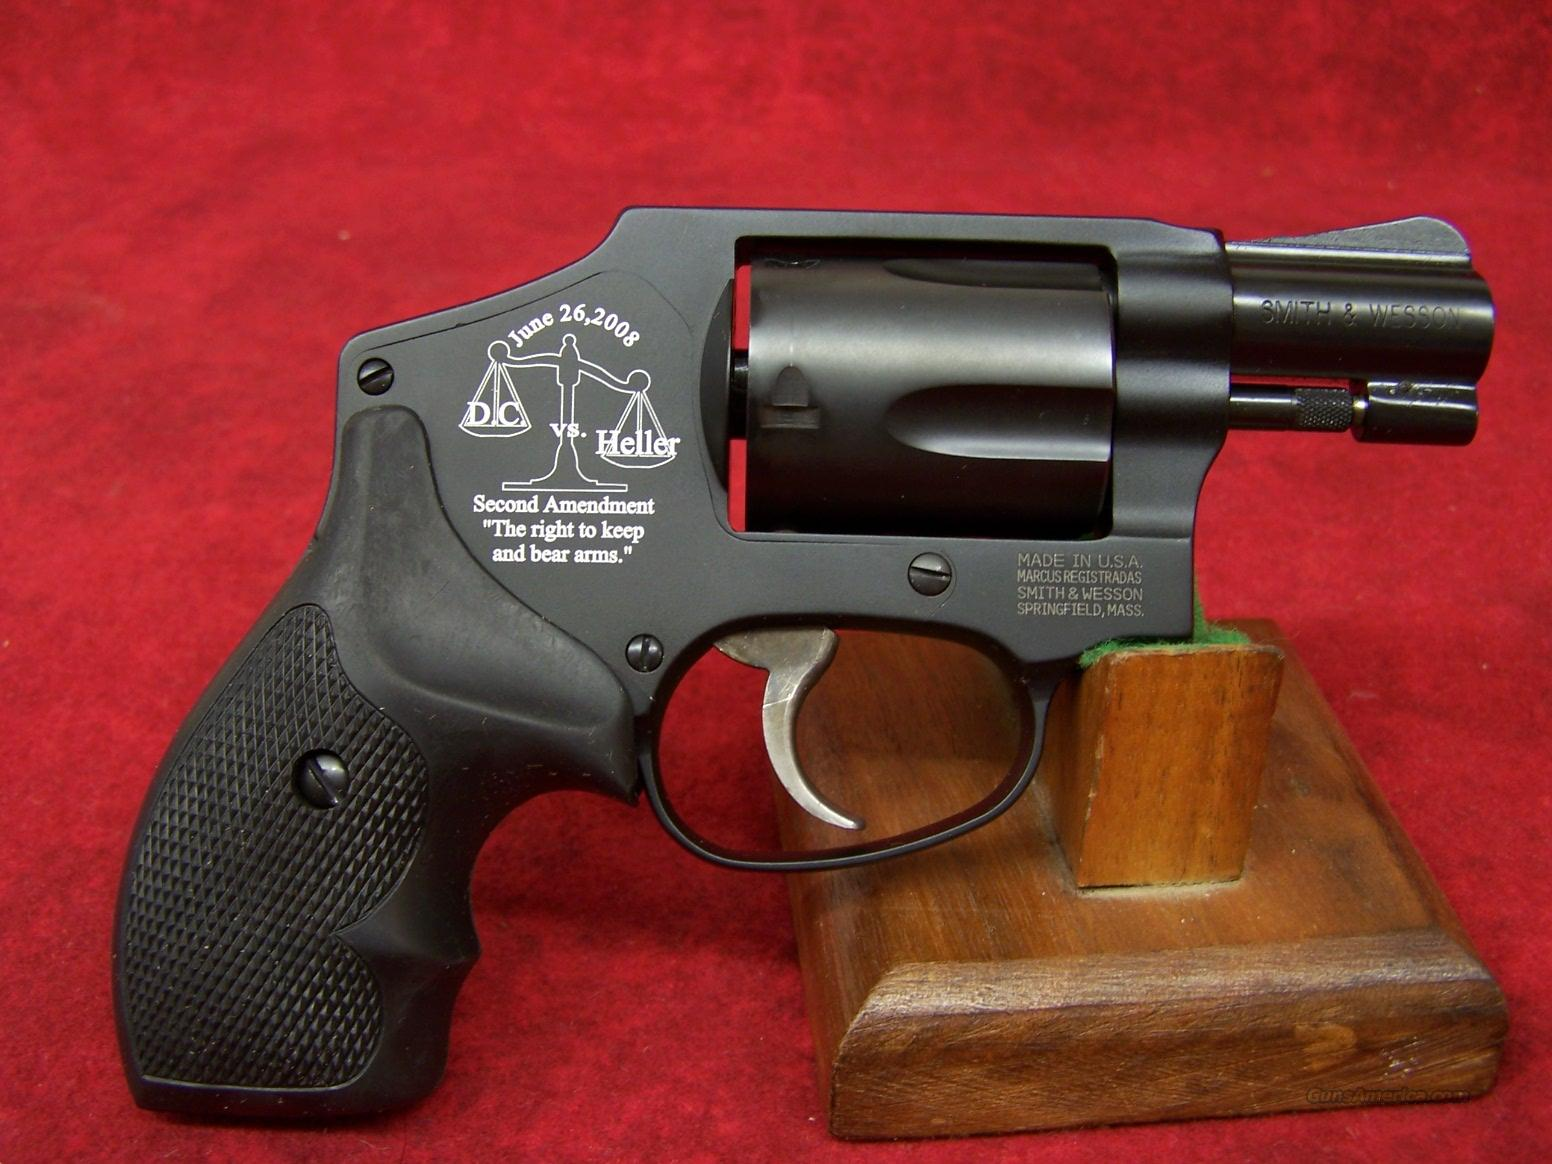 Smith & Wesson 442 D.C. vs Heller .38 Special  Guns > Pistols > Smith & Wesson Revolvers > Pocket Pistols